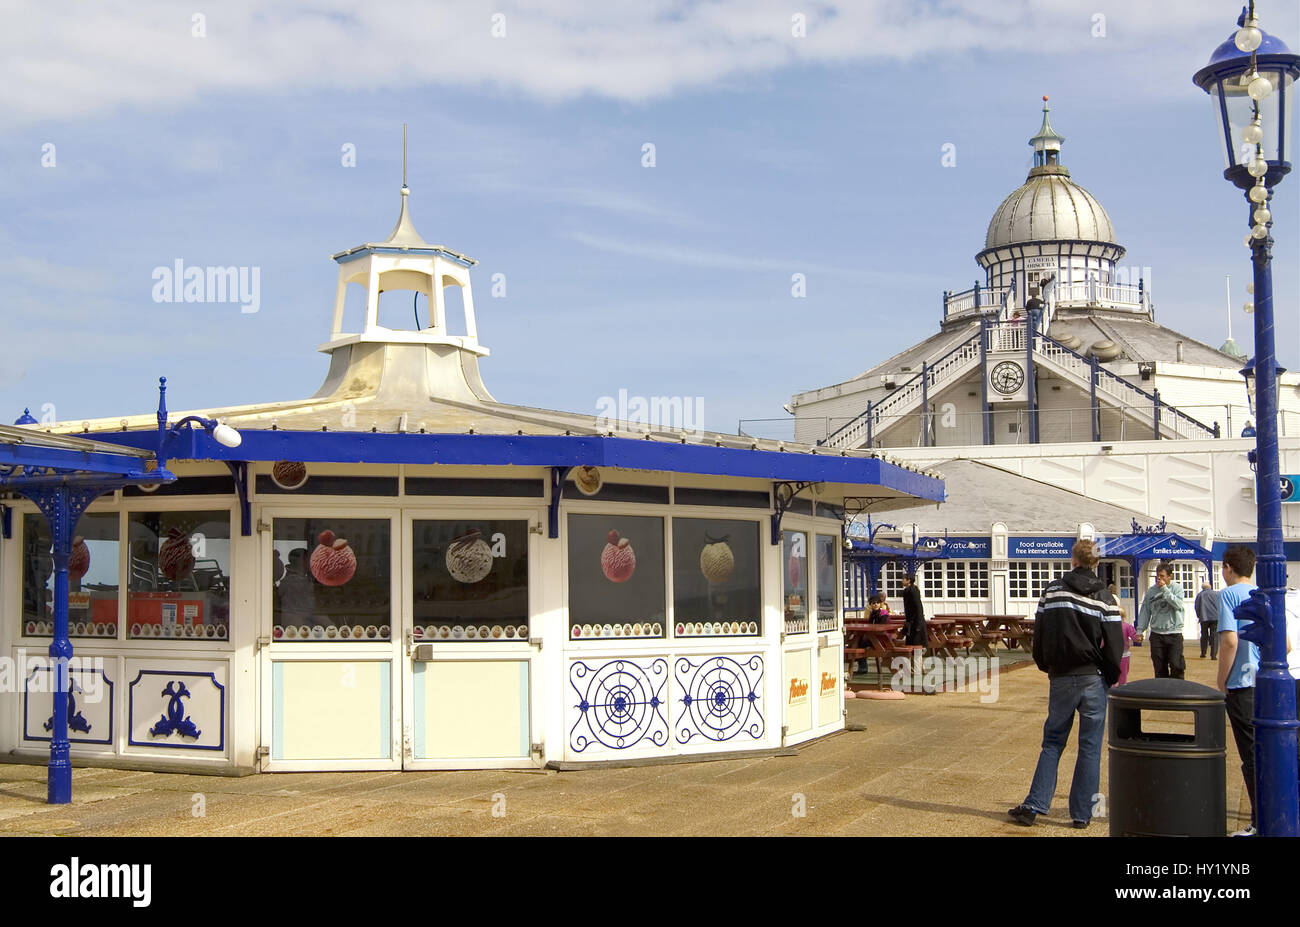 The wellknown Pier at the popular beachside resort of Eastbourne in East Sussex, South England. Stock Photo